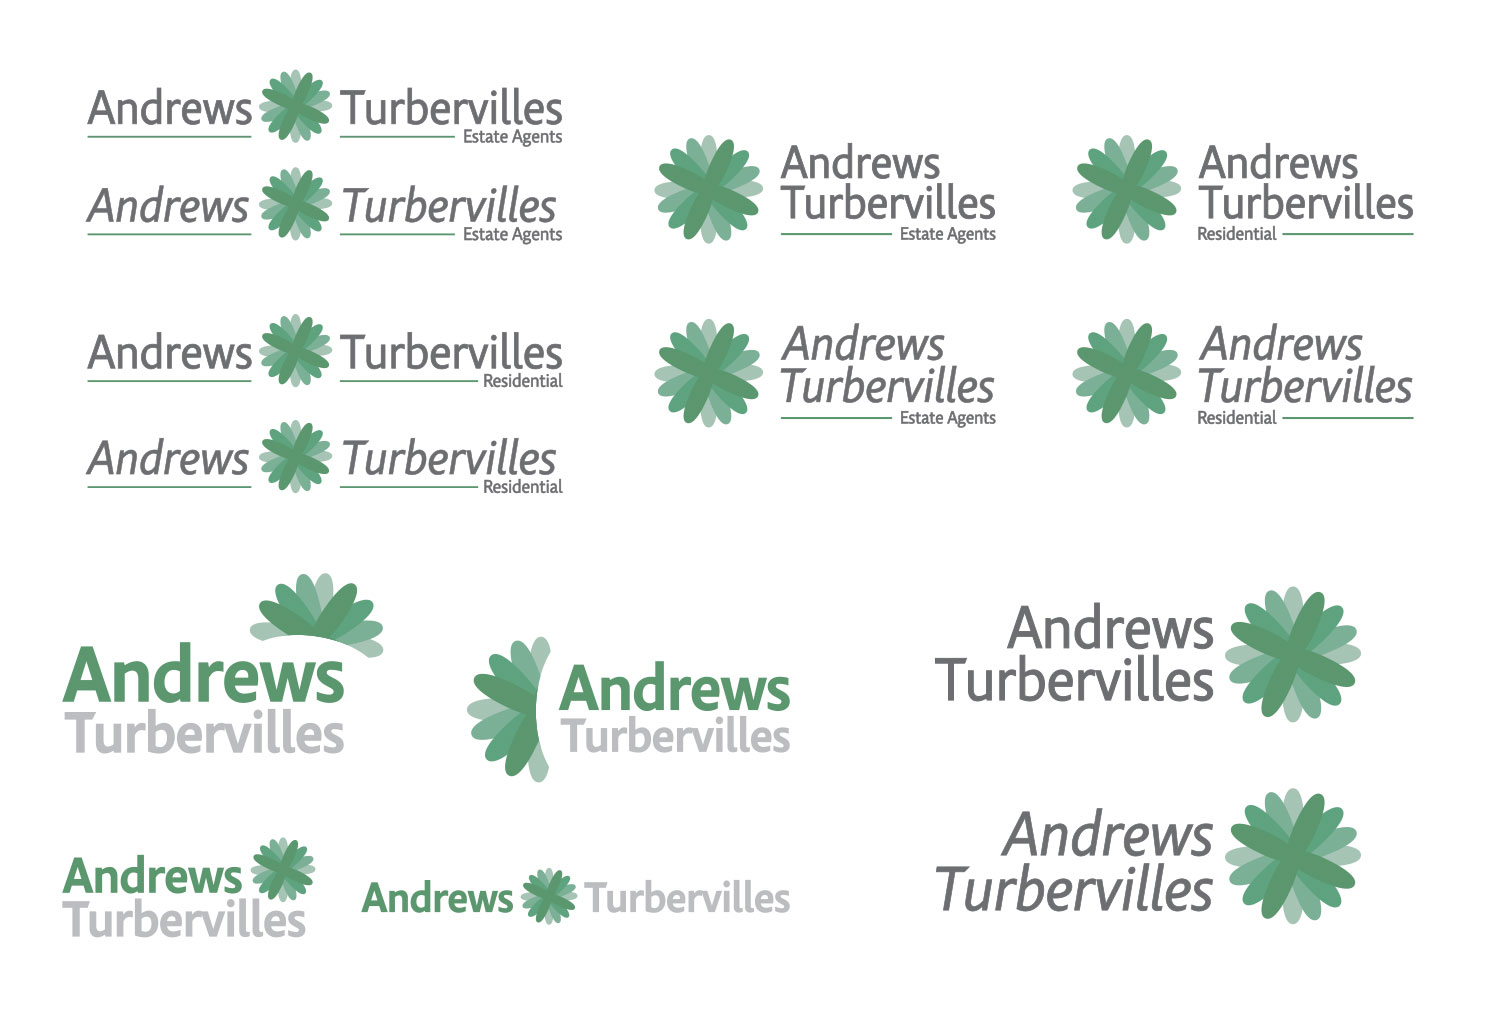 Andrews Turbervilles concepts